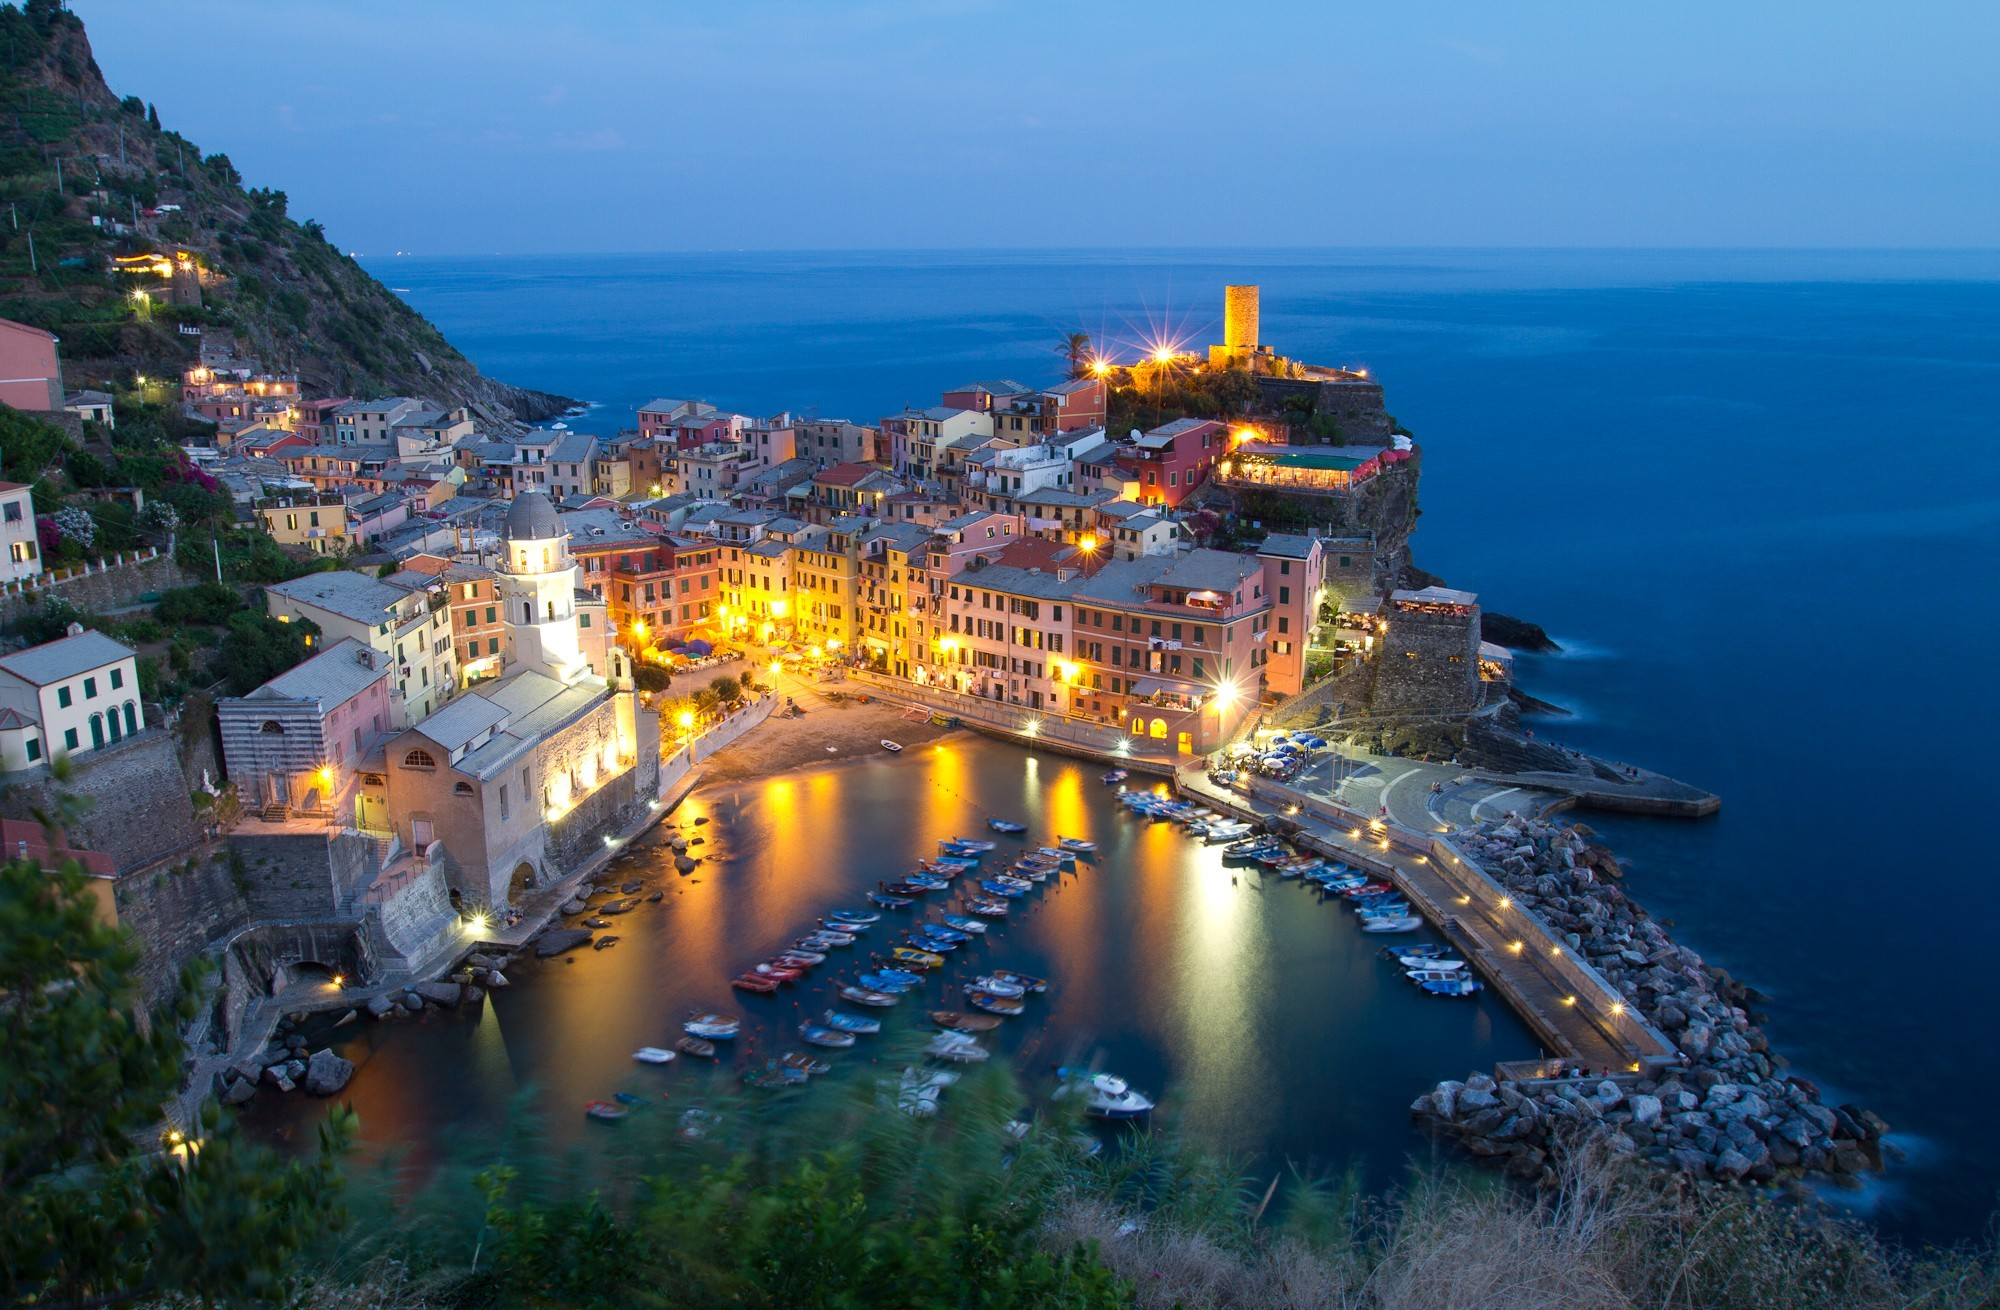 Vernazza hd wallpaper background image 2000x1310 id for Wallpaper italia